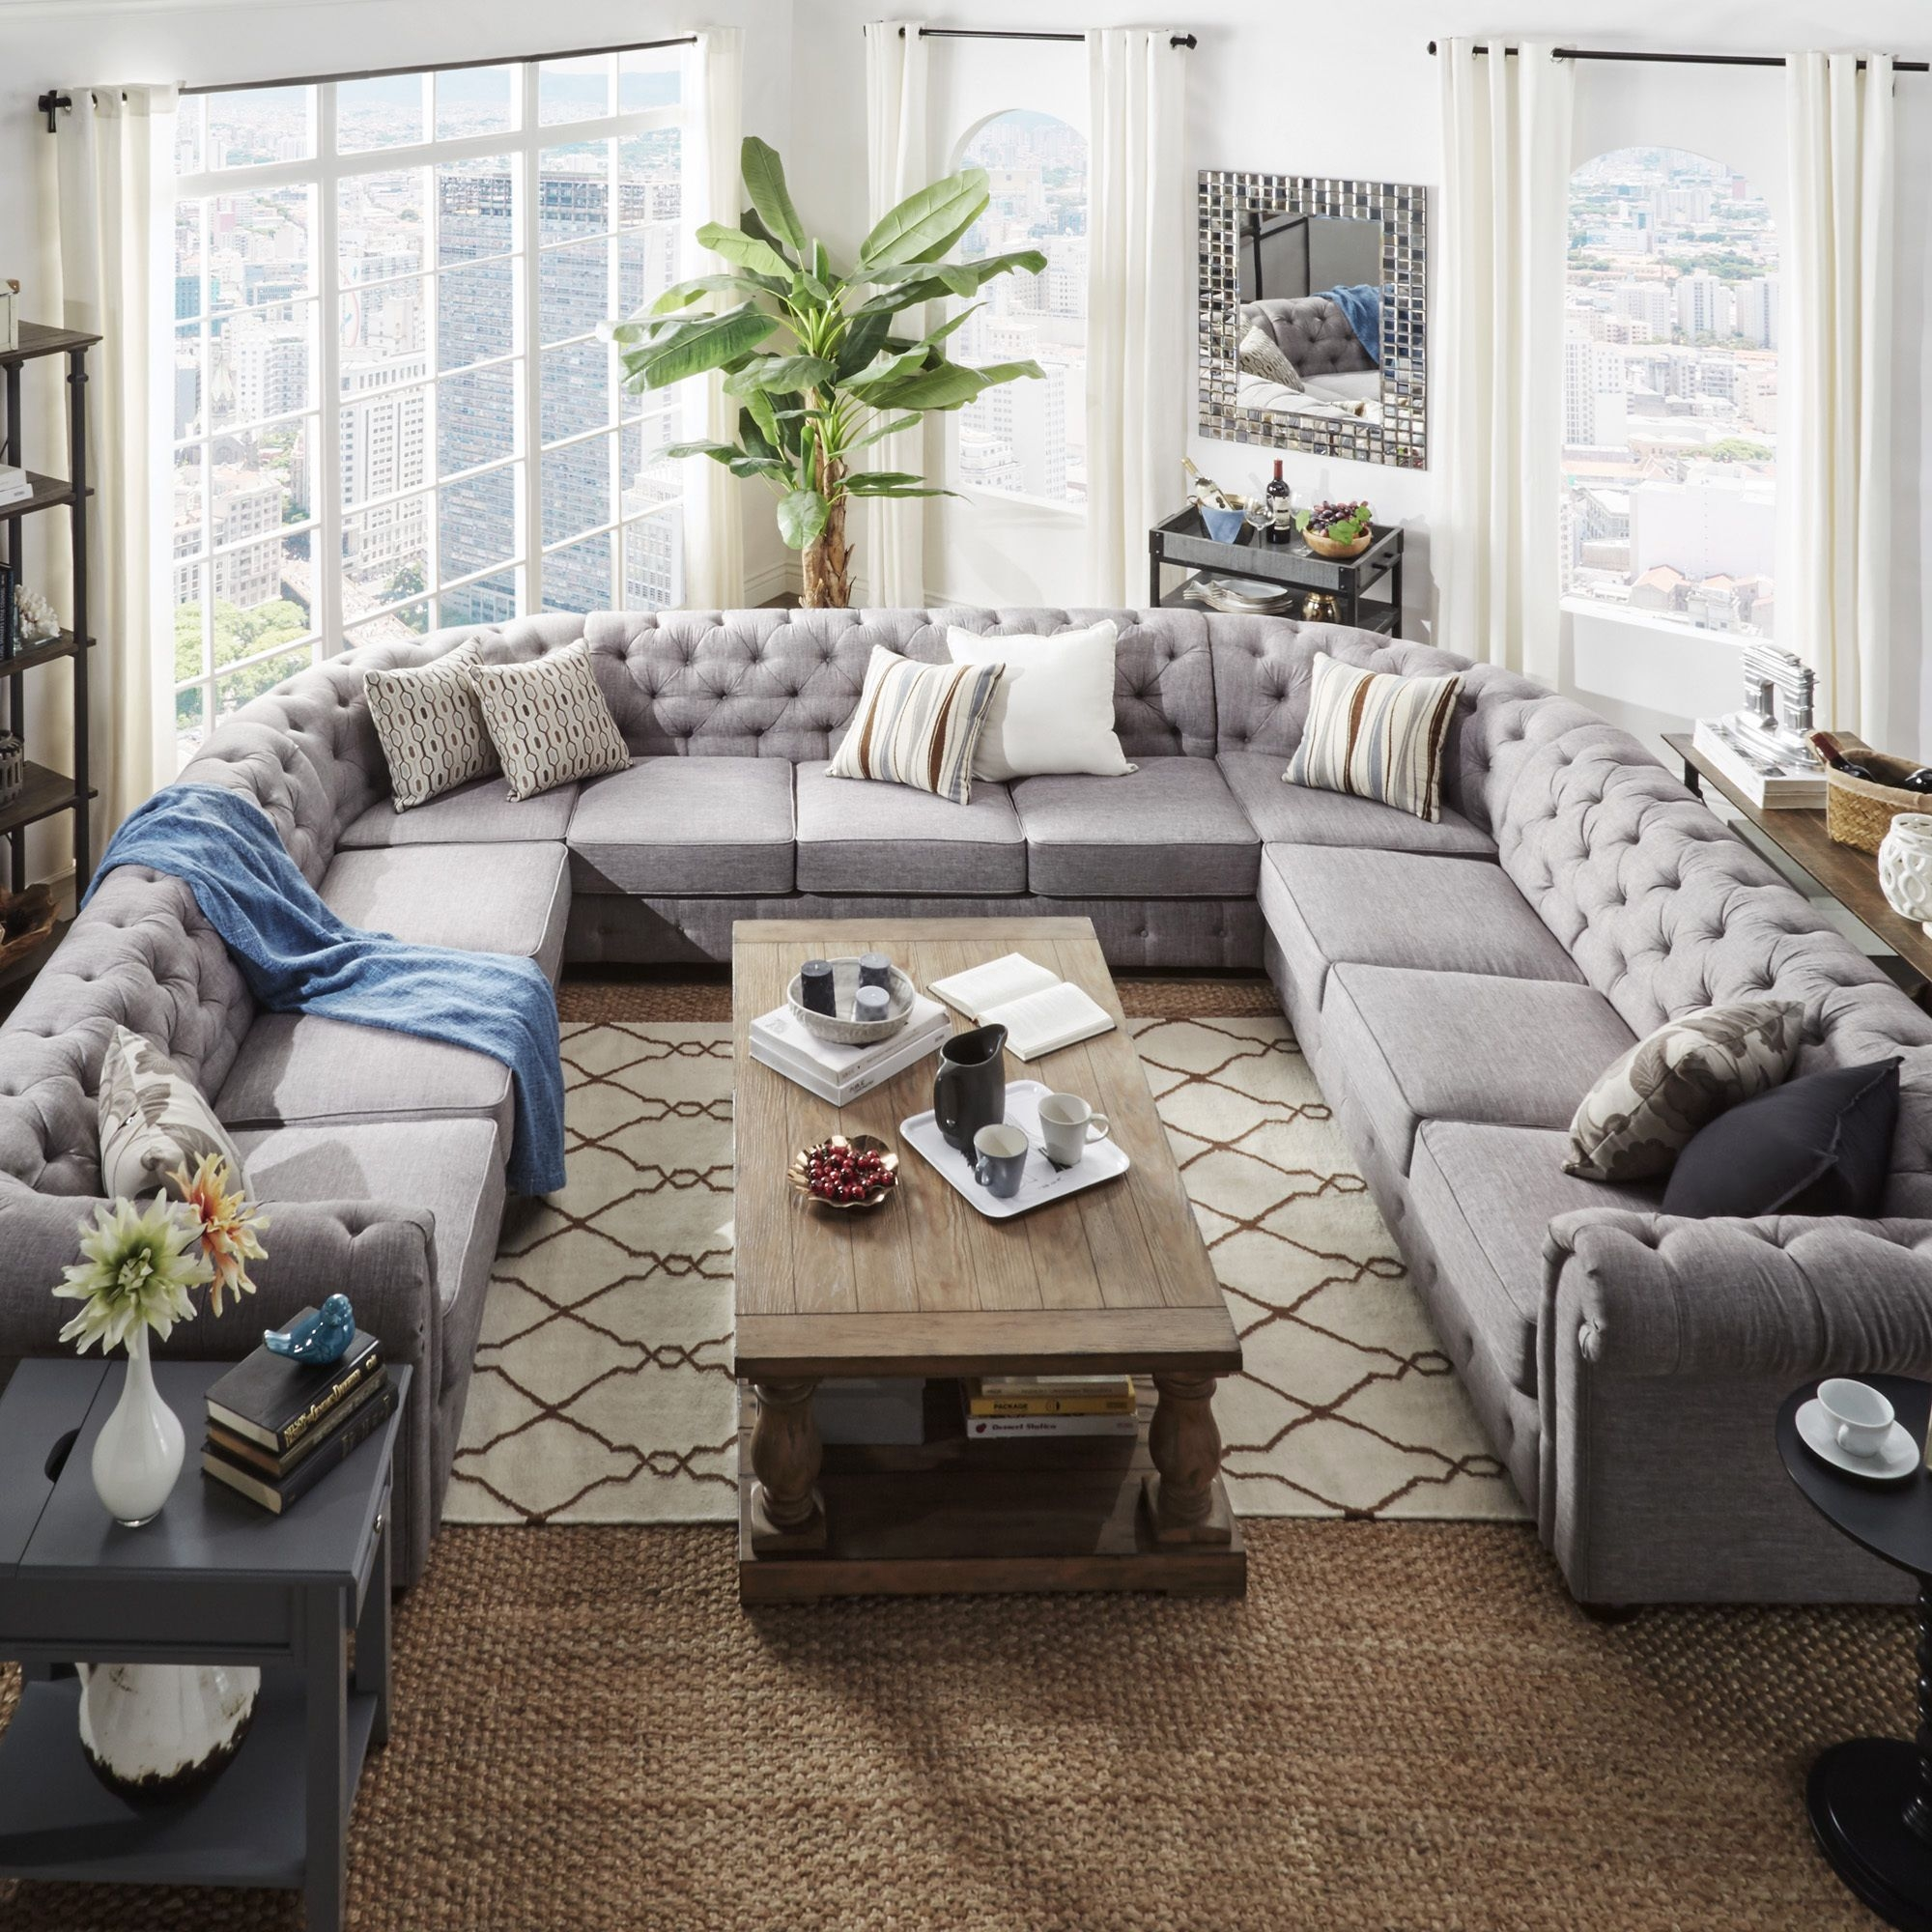 Quality Sectional Sofas Sectional Sofa For Small Places Best Intended For Quality Sectional Sofa (Image 9 of 15)